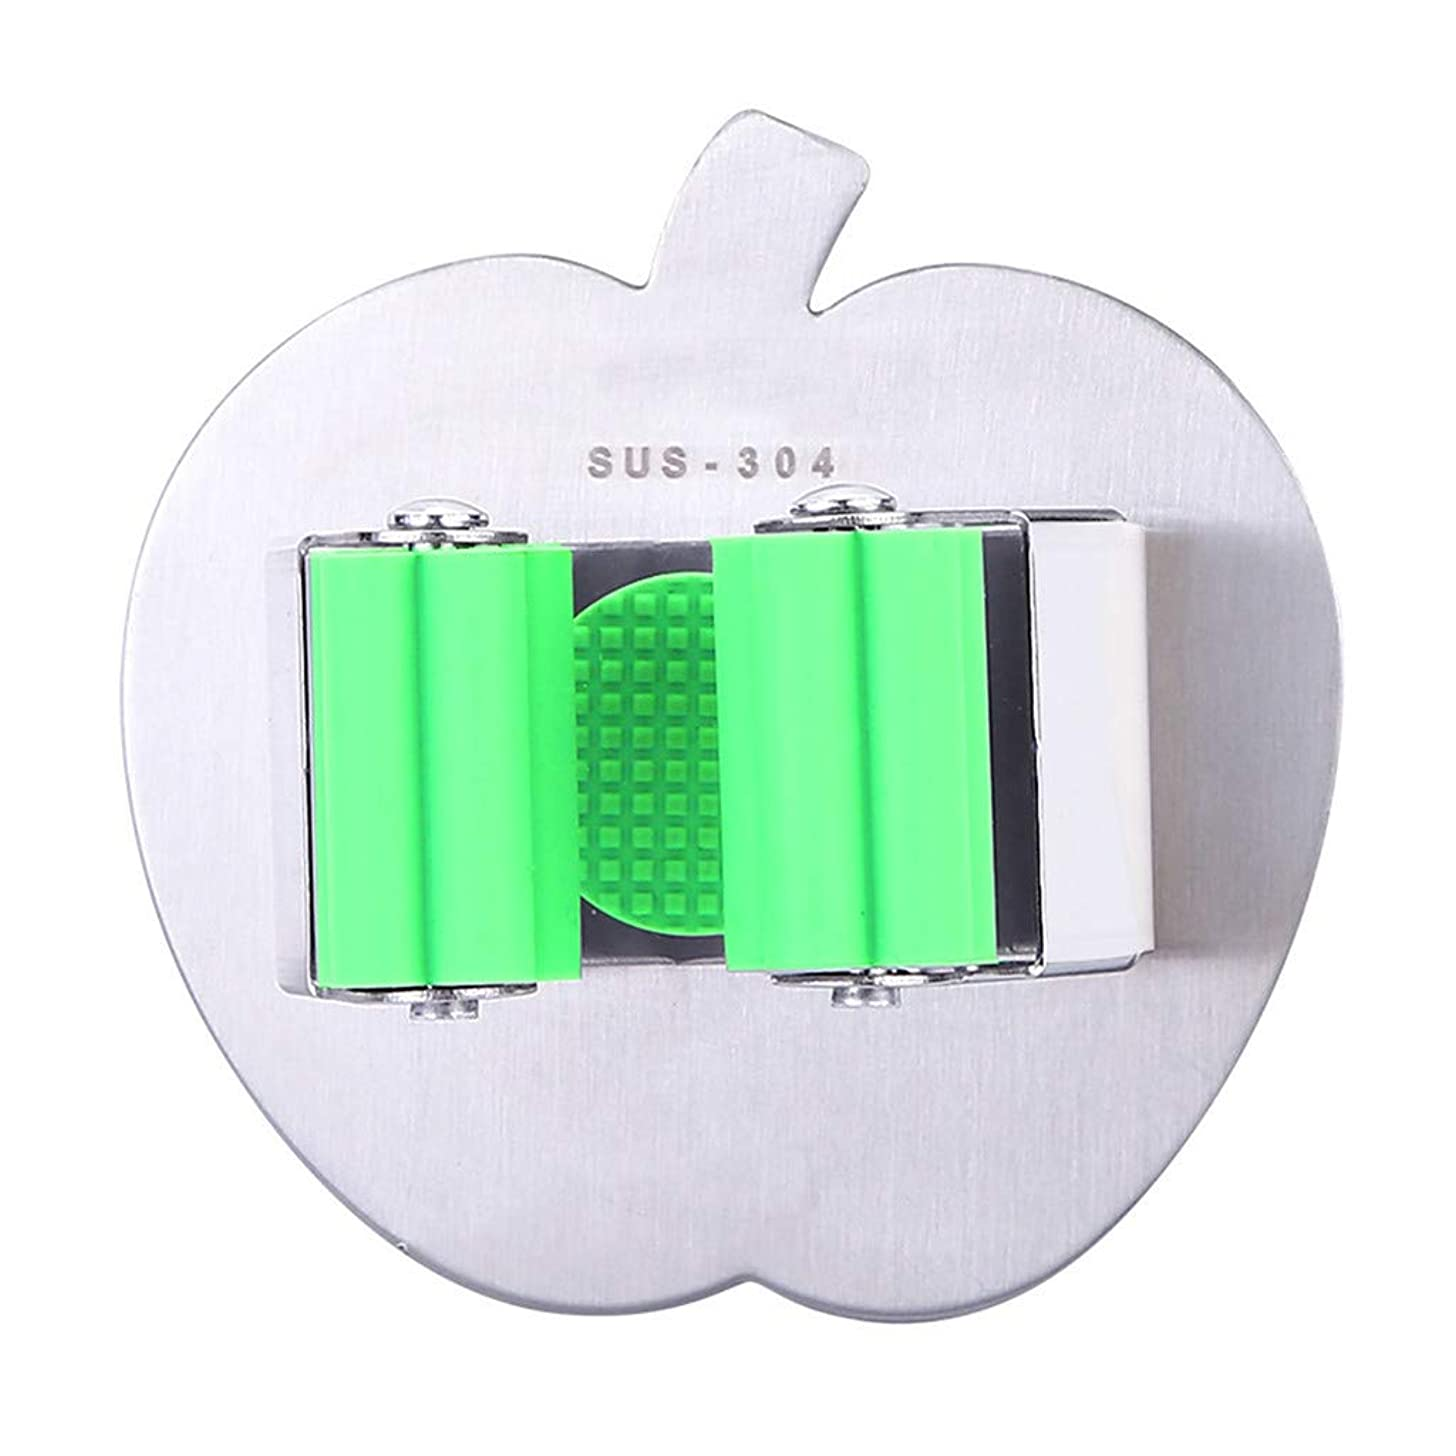 Broom Mop Holder Wall Mounted Adhesive Stainless Steel Mop and Broom Holder Organizer Brush Broom Hanger Wall Mount Utility Rack for Mops and Brooms 1PC (Green)